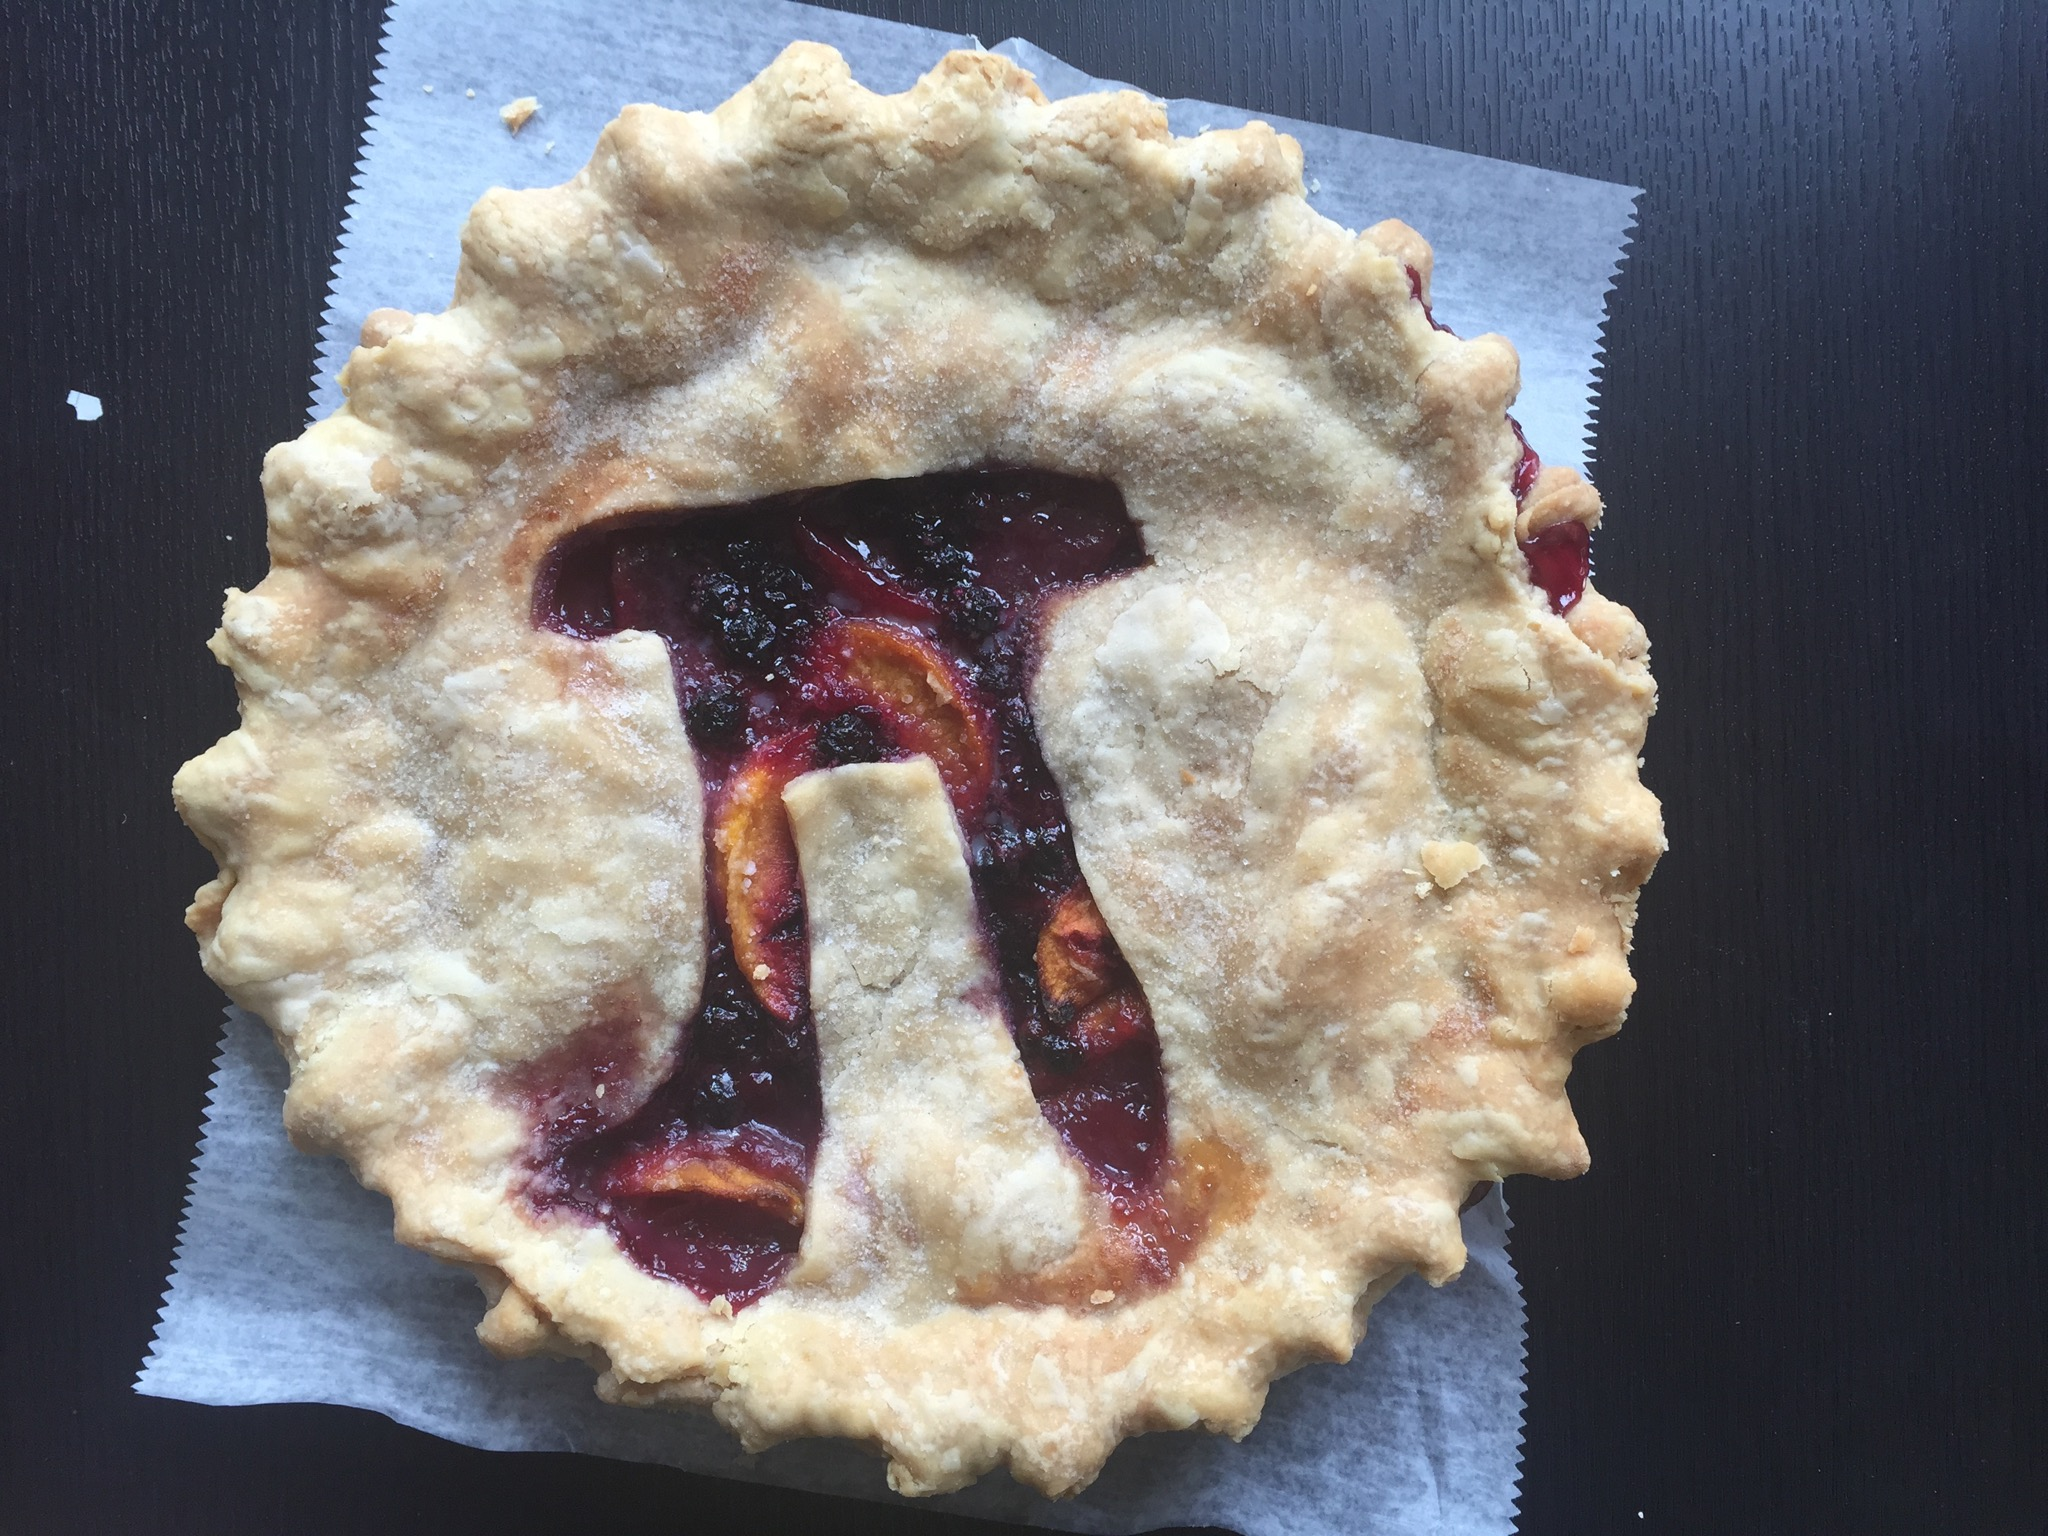 Pi Day Pie (Peach Berry - My Sugar Pie Bakery, Zionsville Indiana)